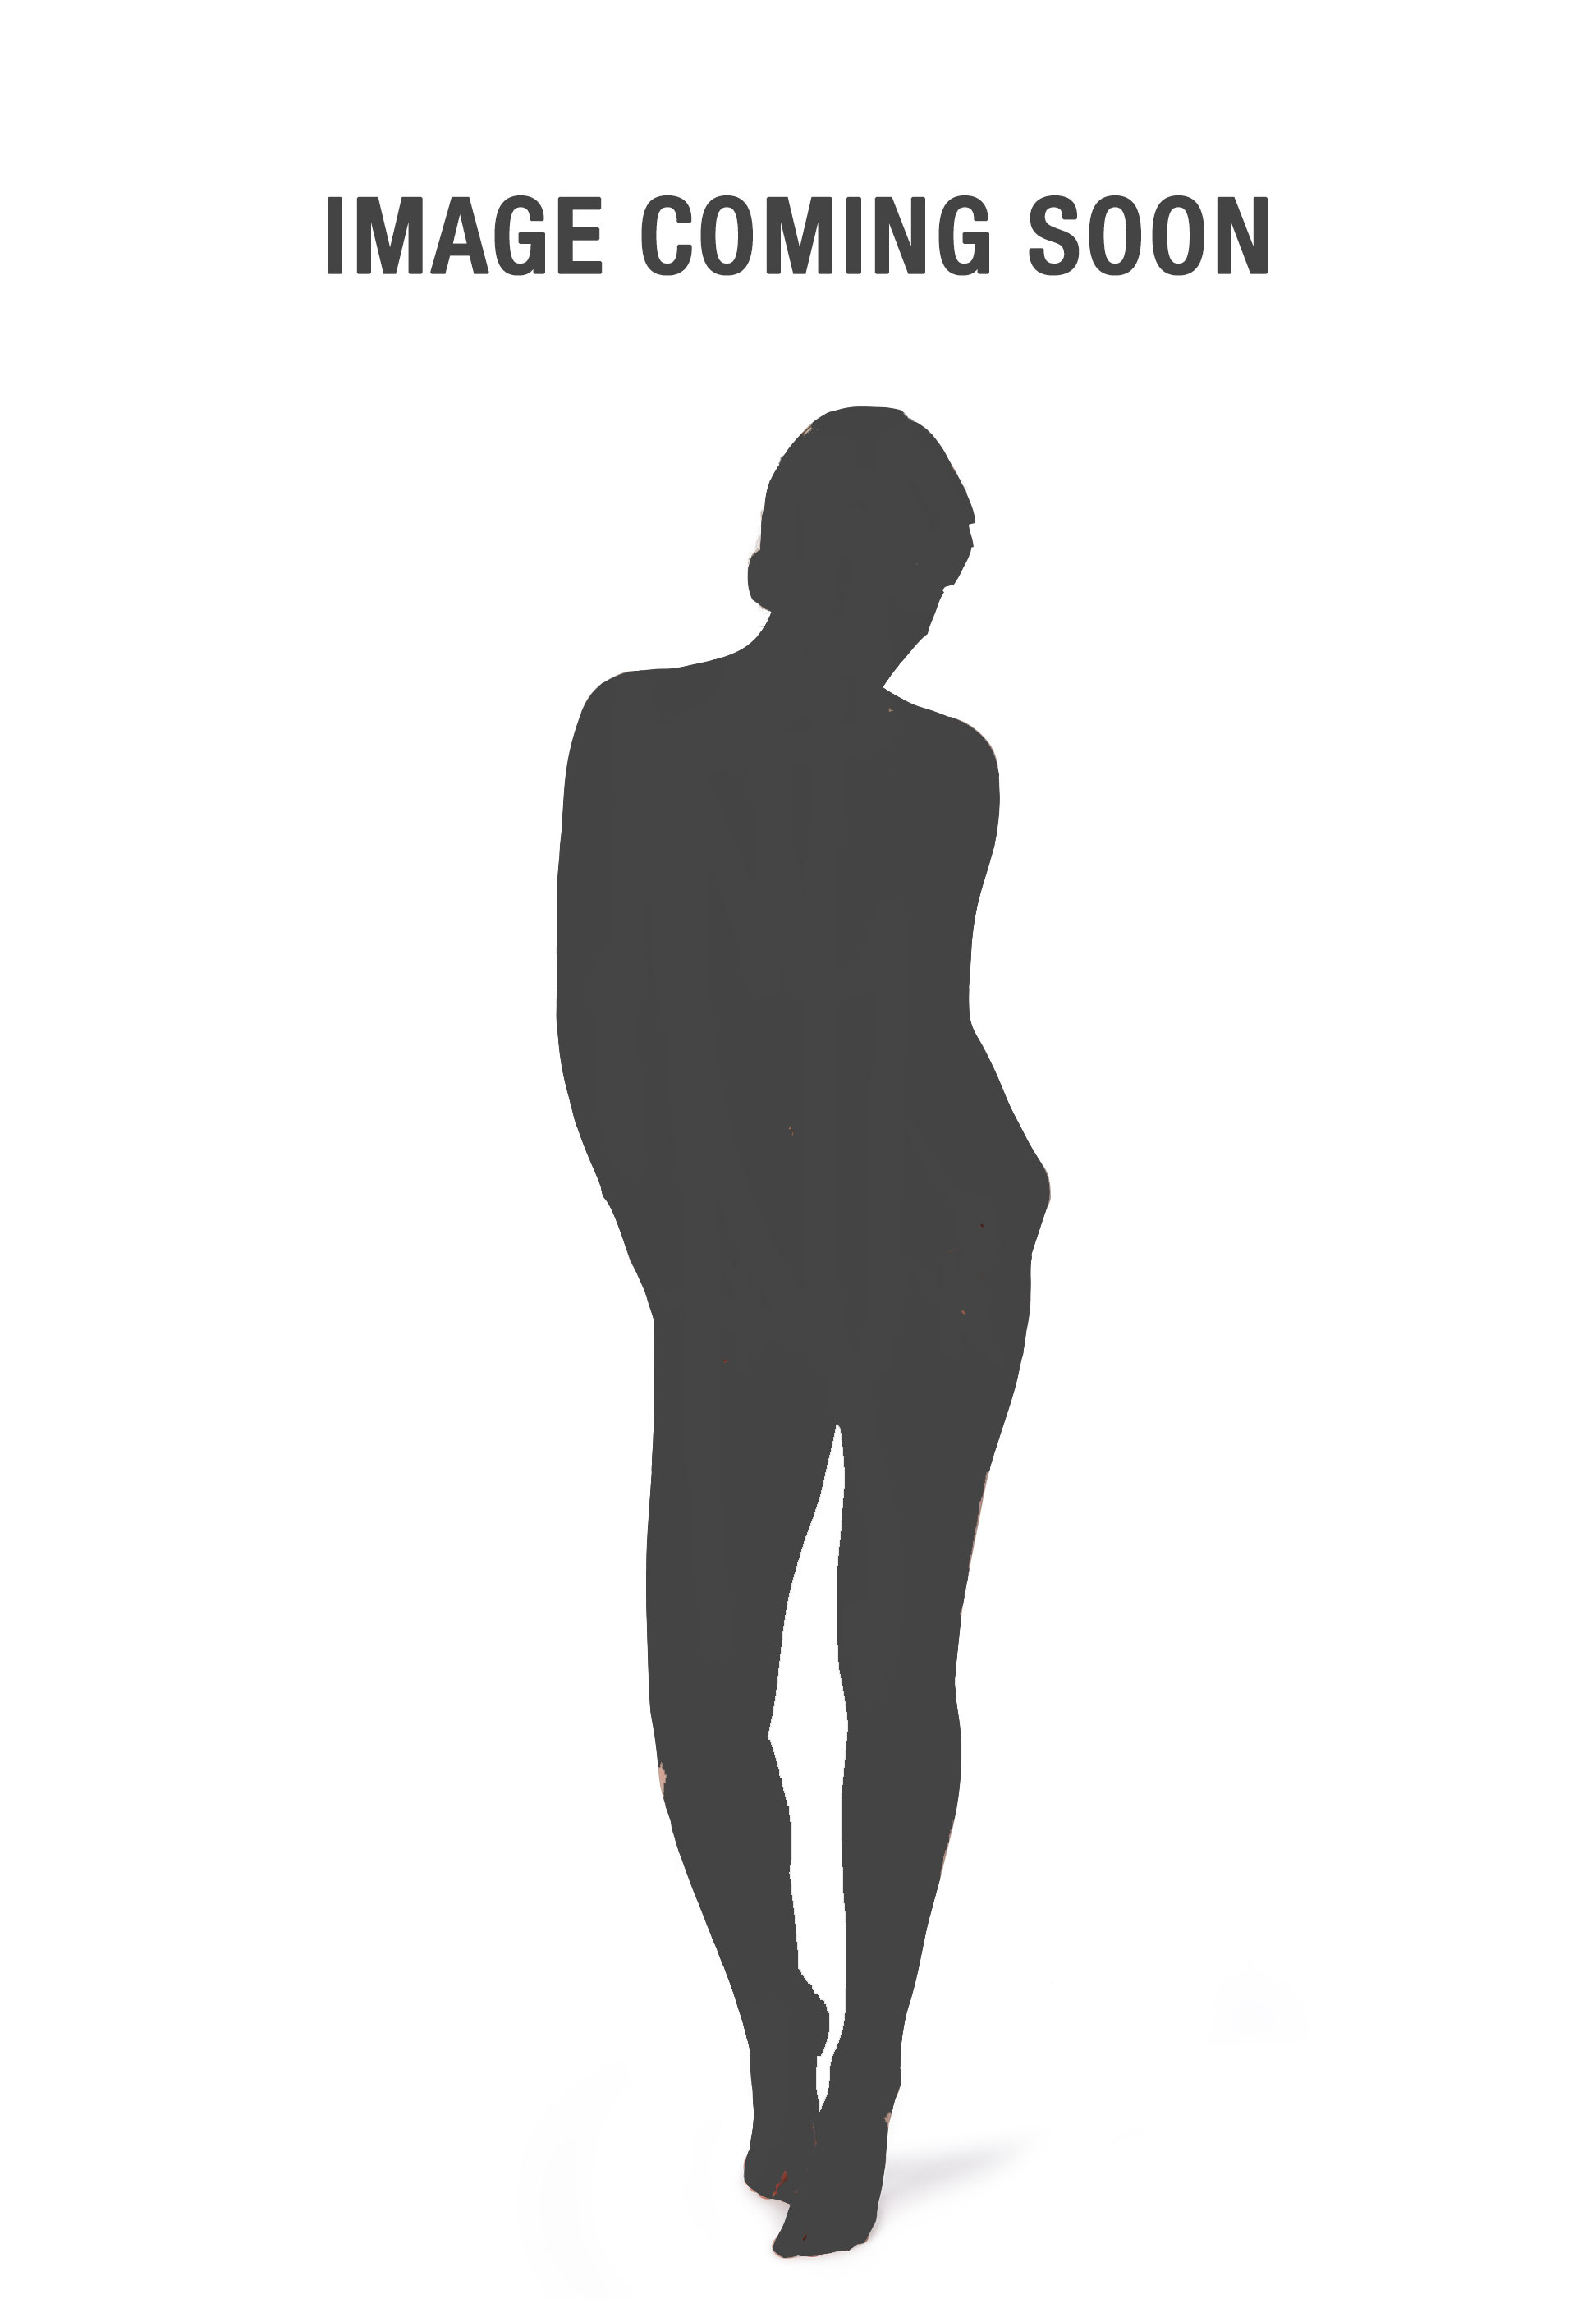 Huber_Basic_M_24hoursMenSleep_shorts_117797_019612_010.jpg